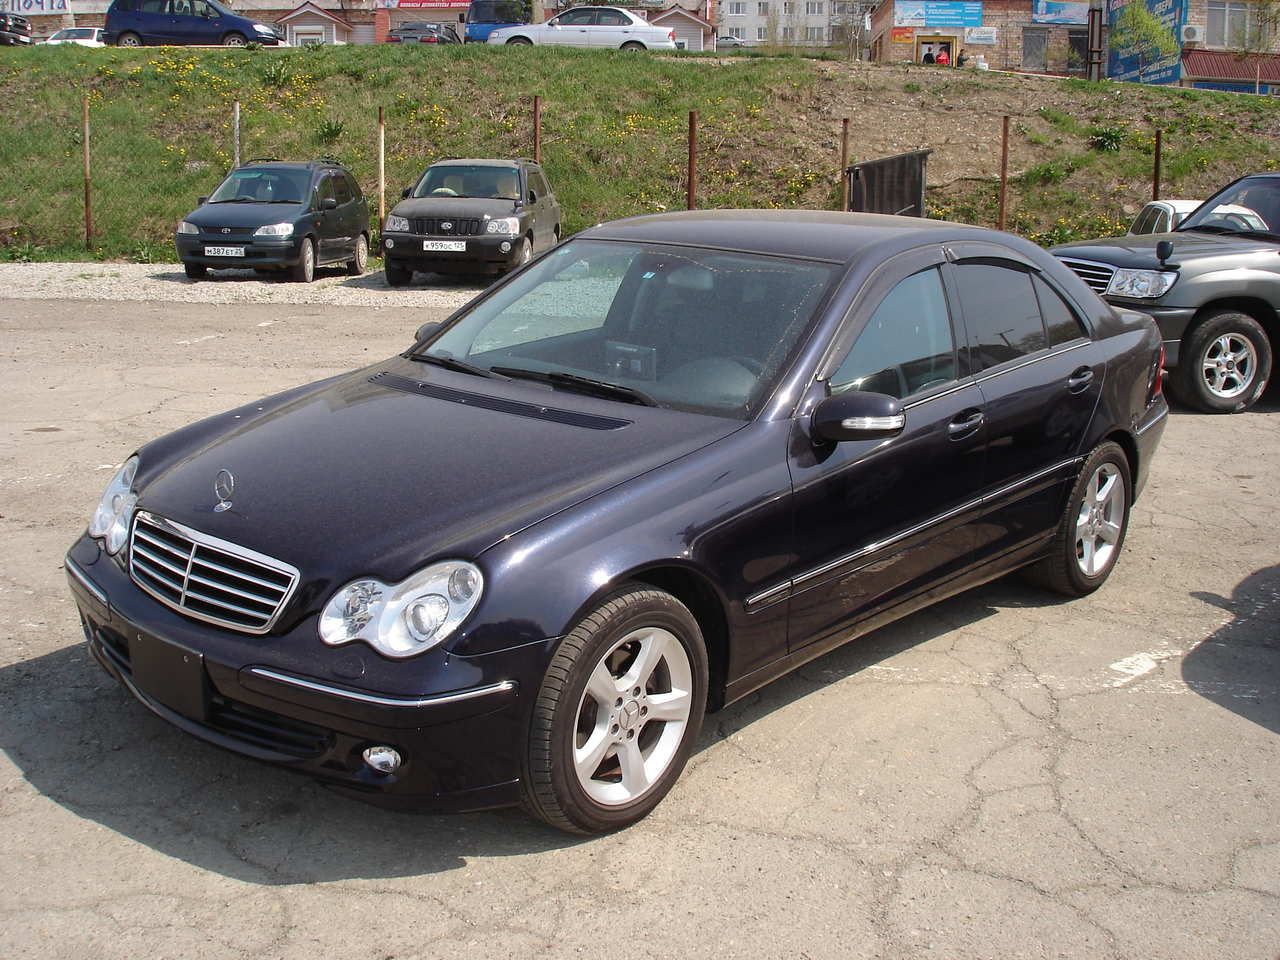 2006 mercedes benz c class photos 2 5 gasoline fr or rr automatic for sale. Black Bedroom Furniture Sets. Home Design Ideas